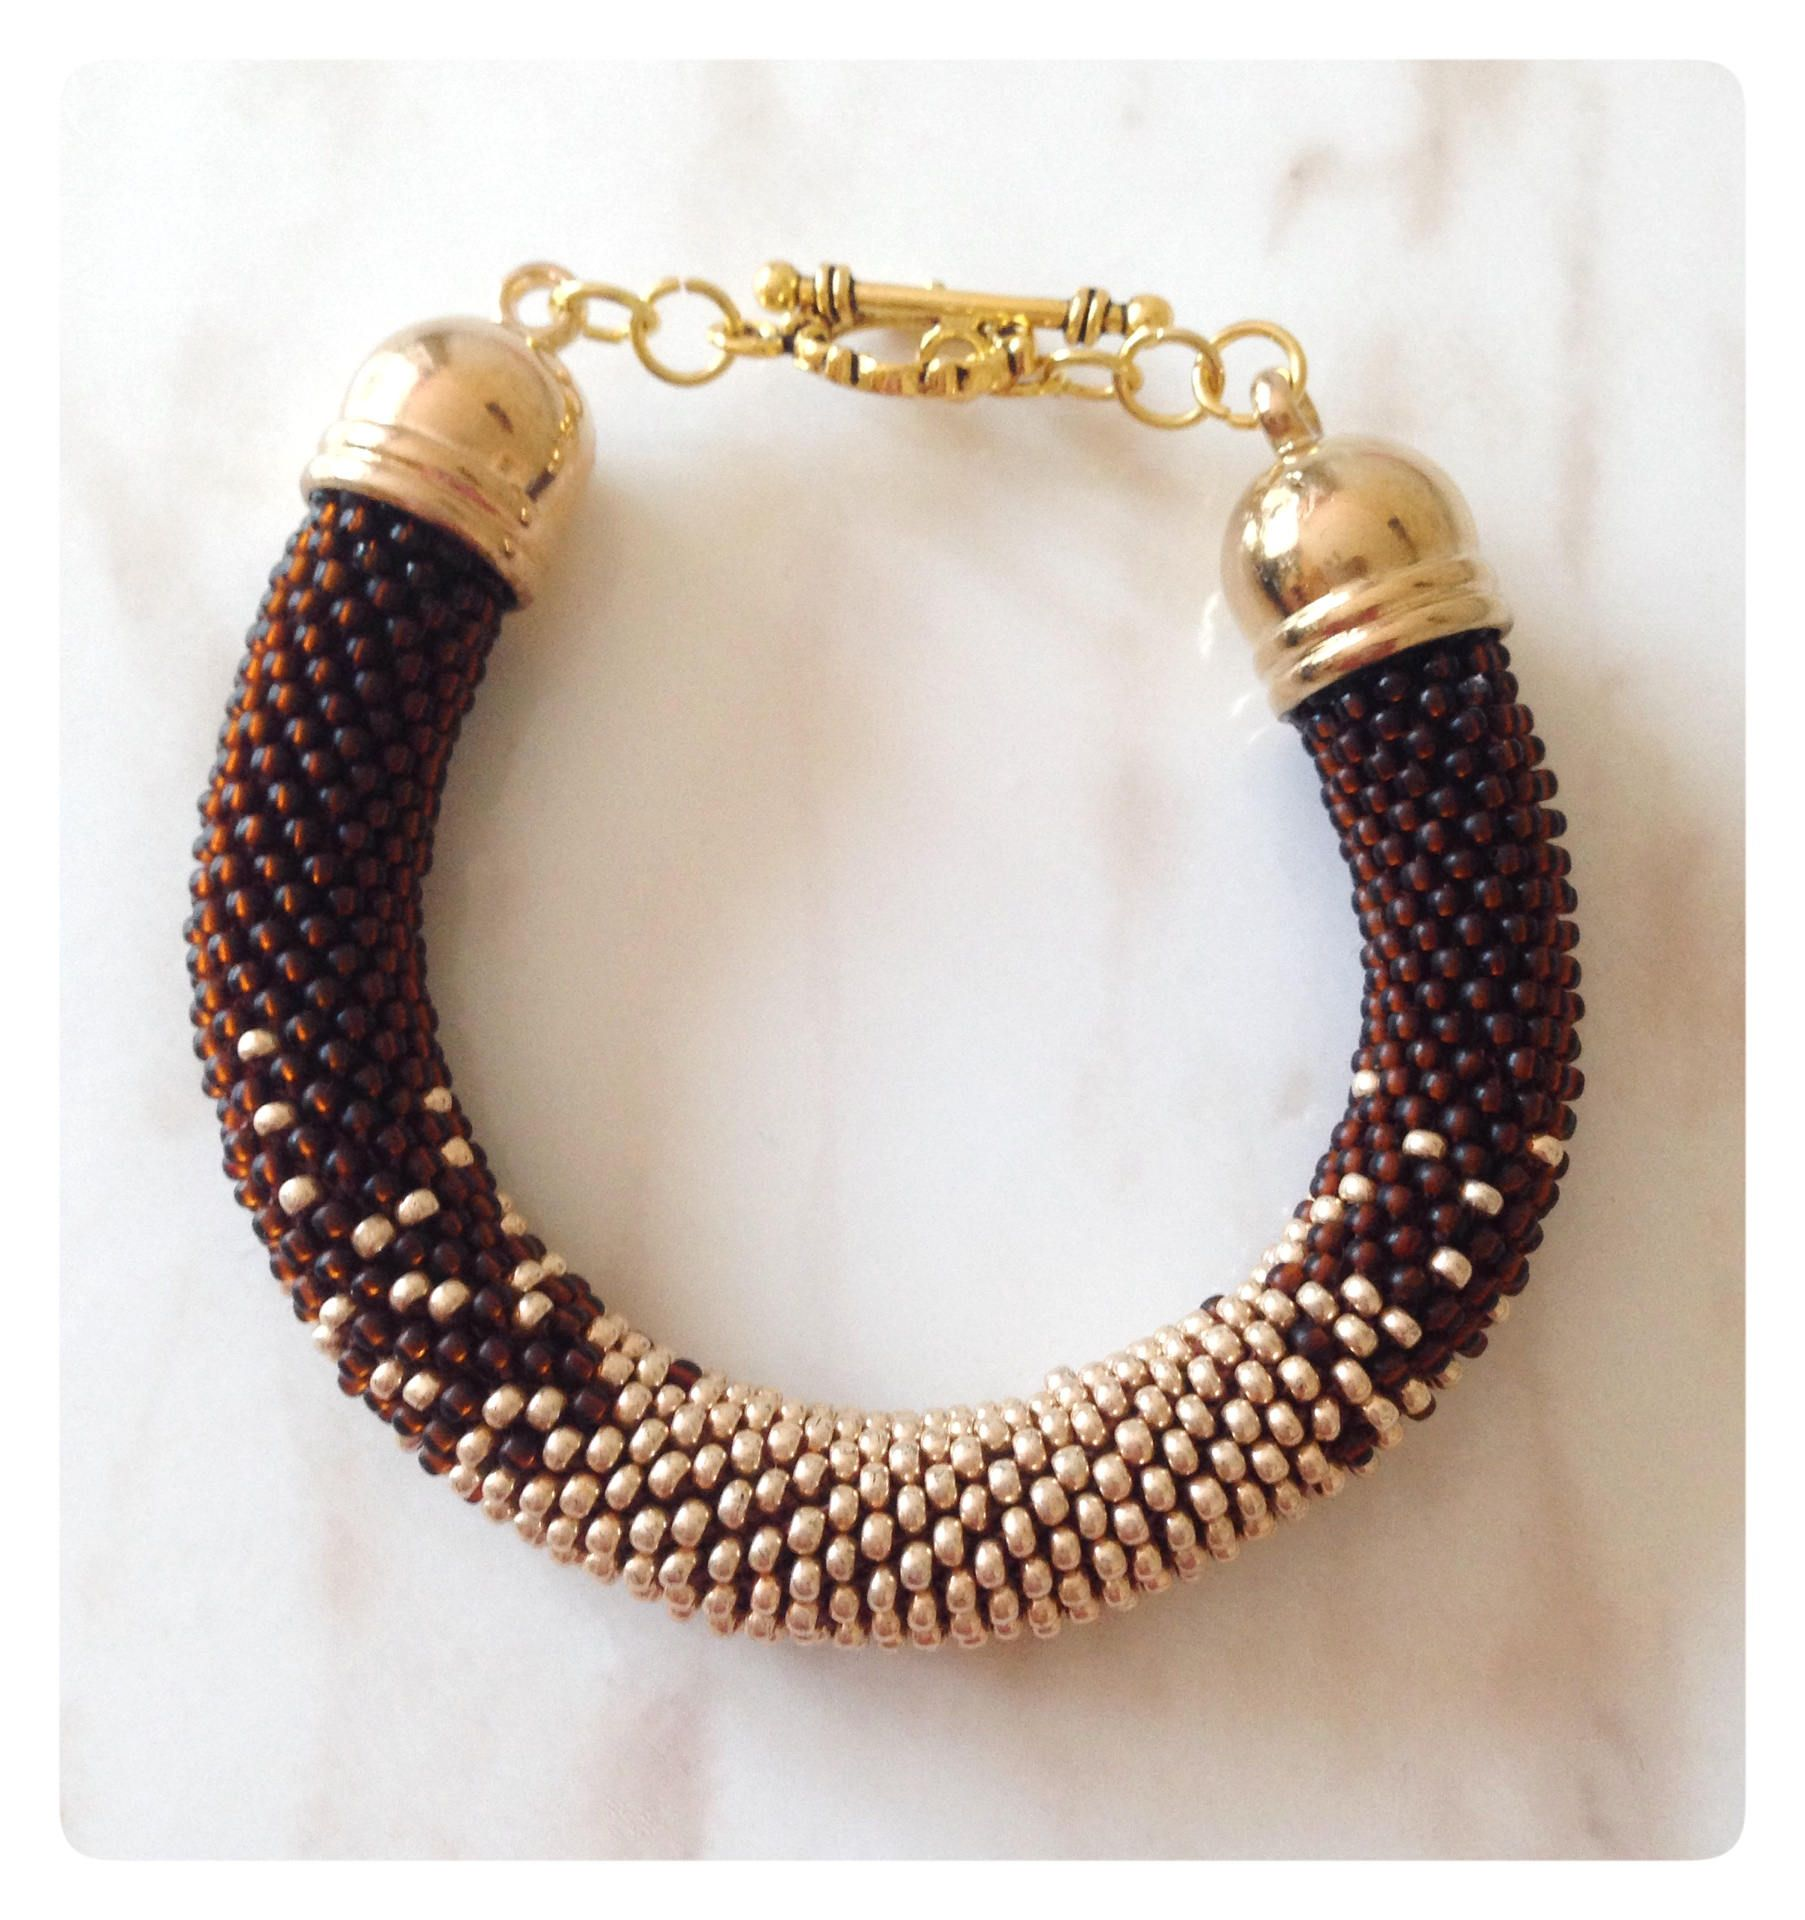 Handmade beaded bracelet in ombre stylebrown and gold fashion